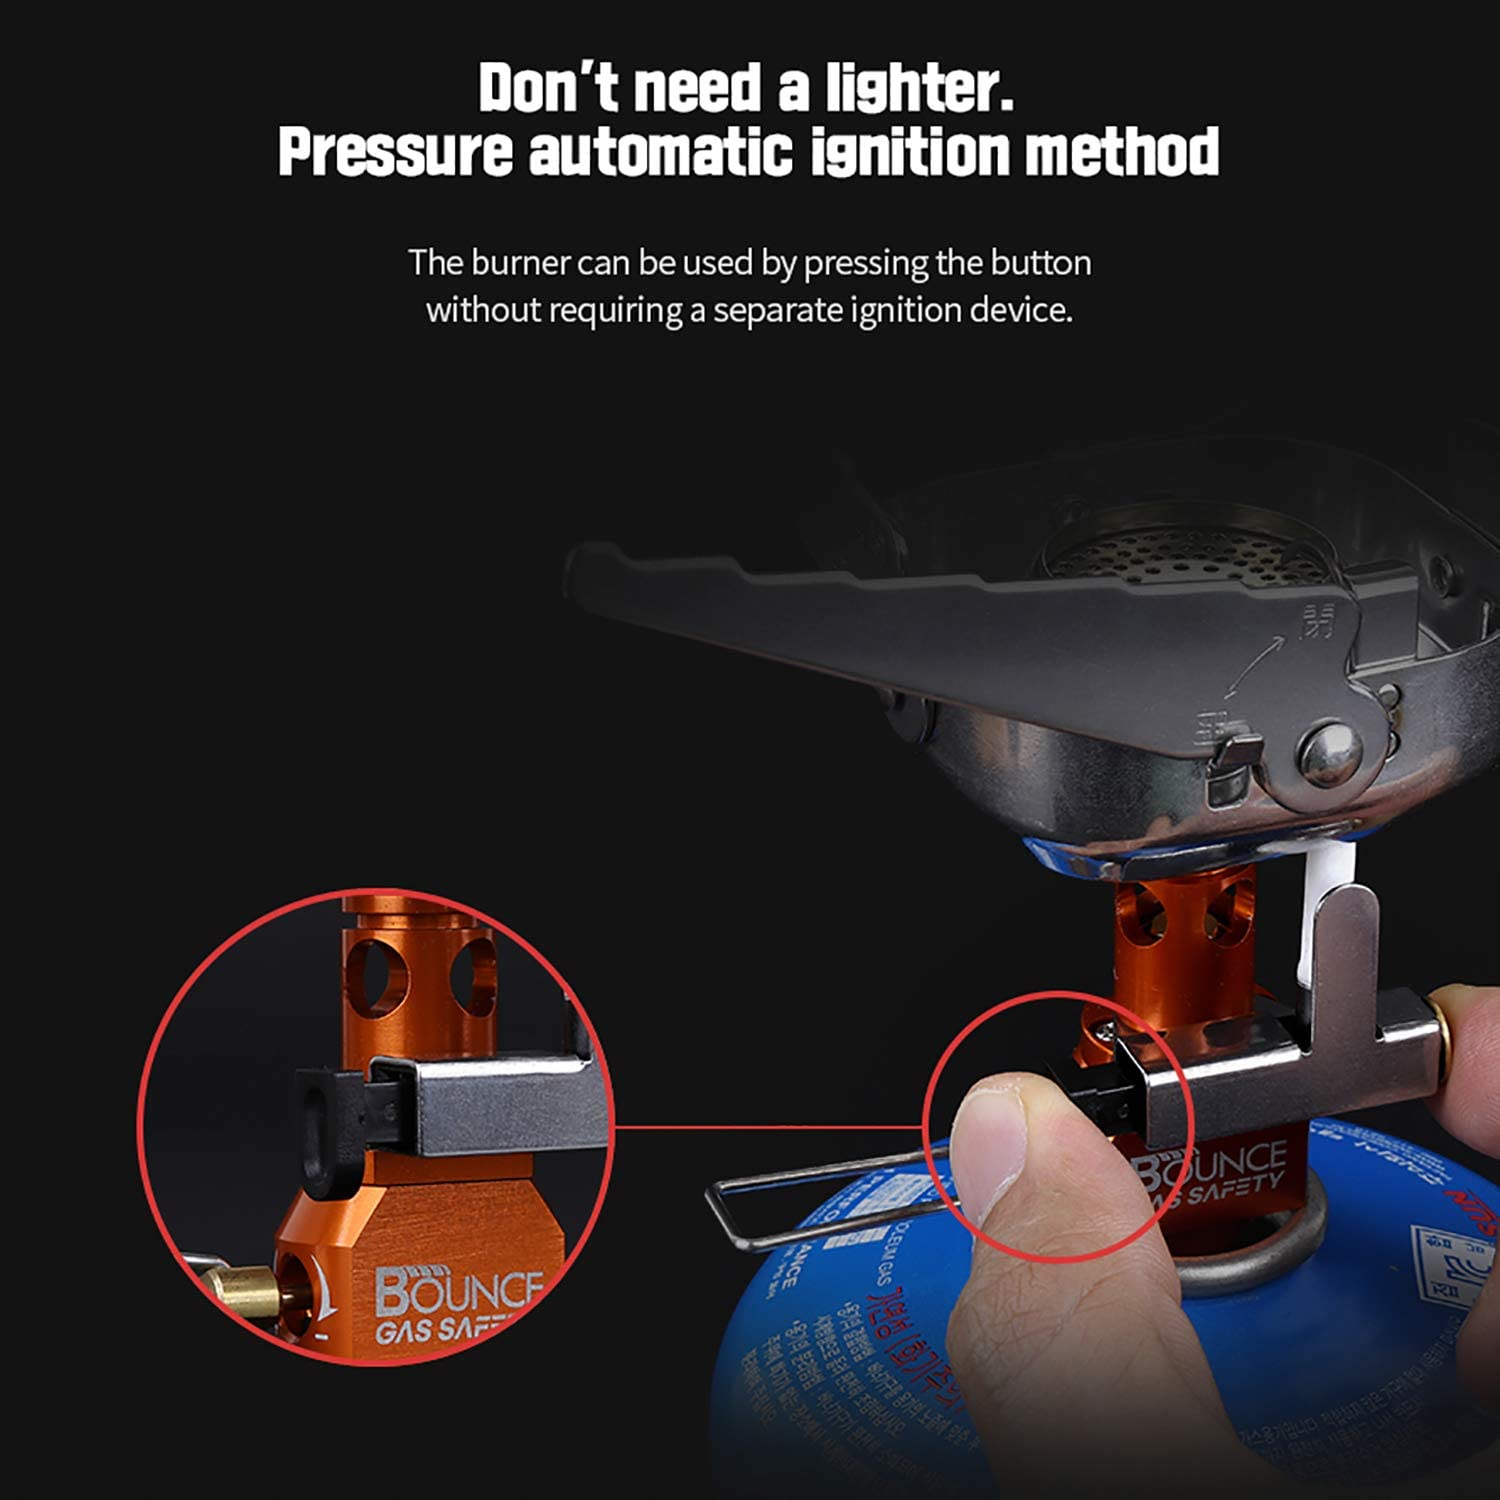 Bounce Gas-Safety Gaskook LB-2020 Automatically Gas Cut-off Camping and Backpacking Stove